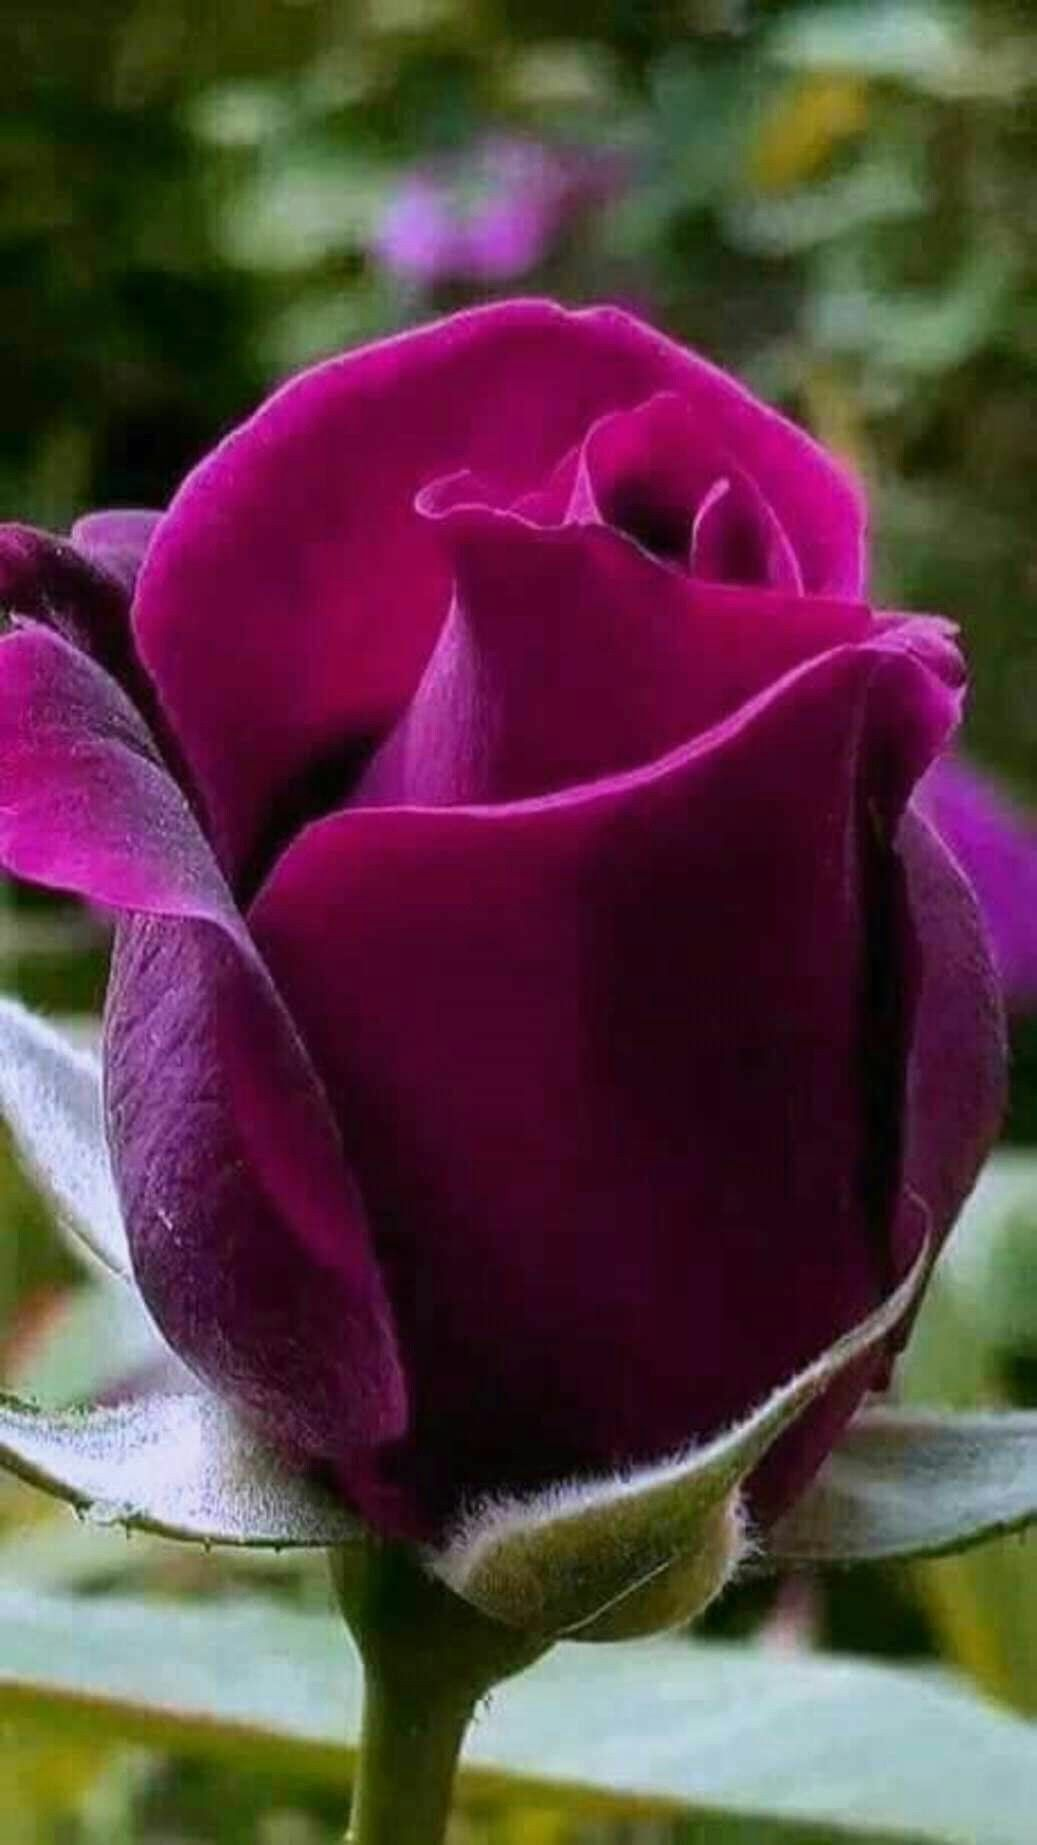 Pin by char bradford on pretty flowers pinterest flowers rose nice rose with purple colour izmirmasajfo Choice Image